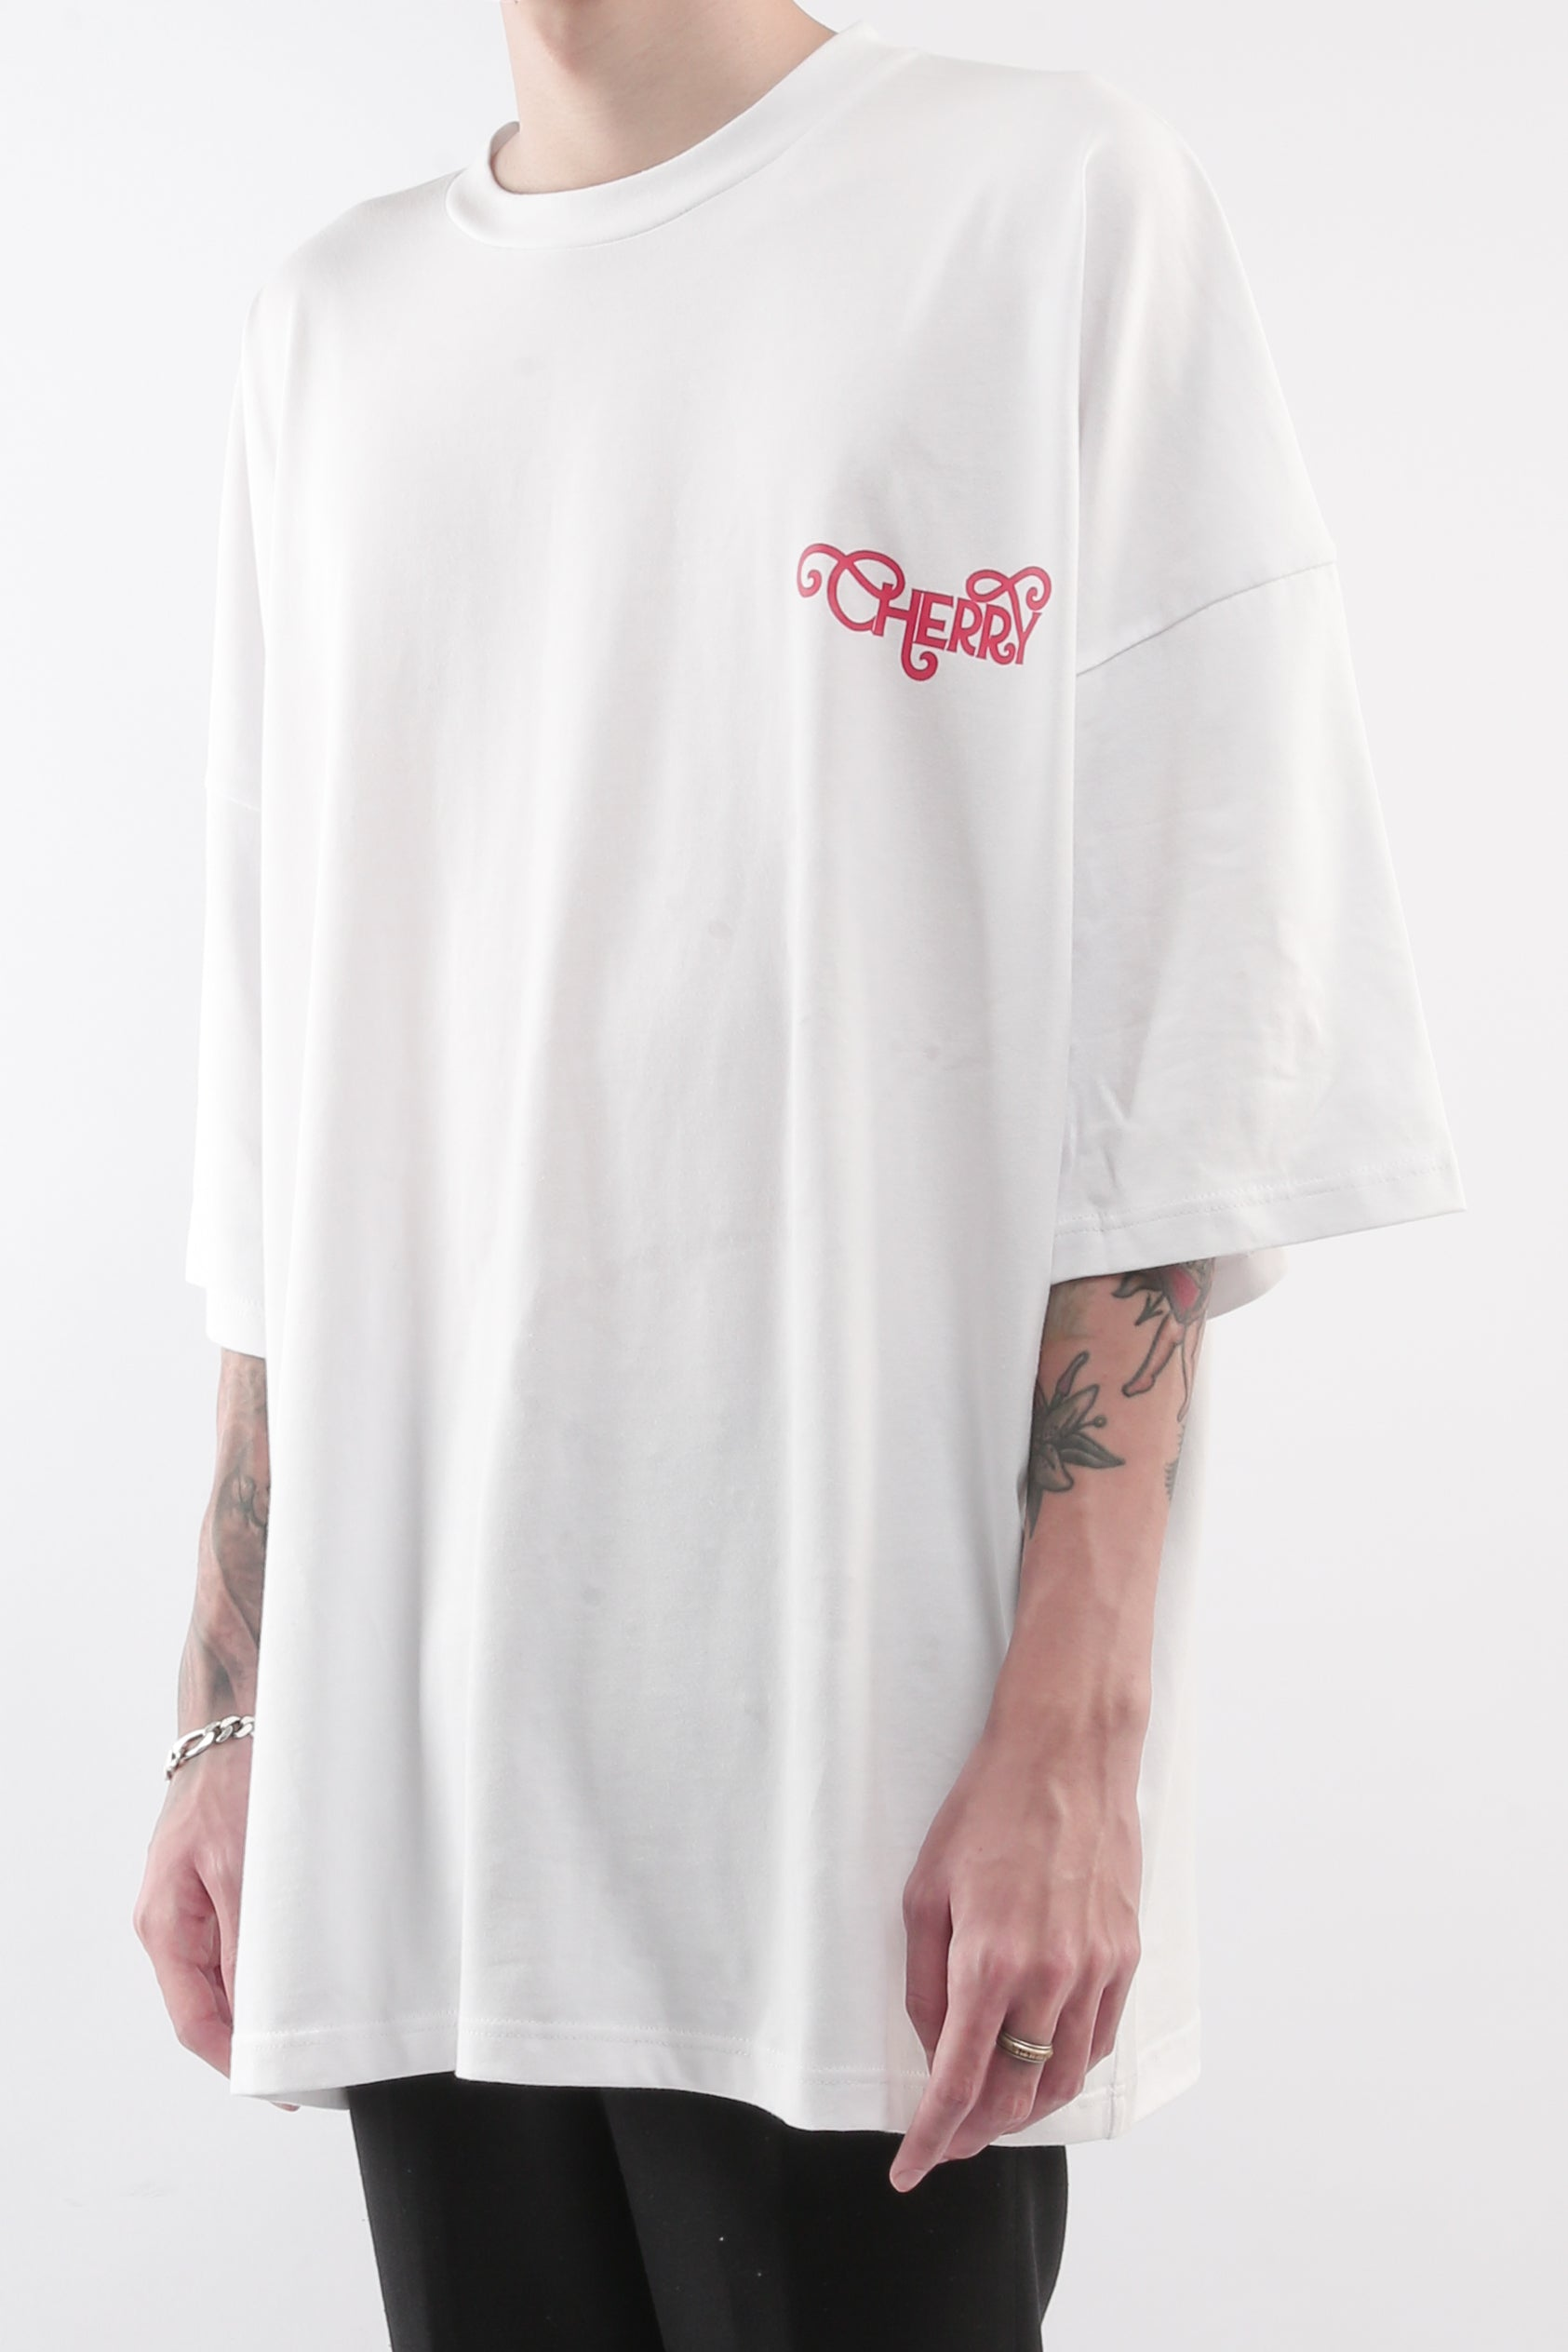 CHERRY DISCOTHEQUE - BIG BOY CUT TOUR TEE IN IVORY WHITE